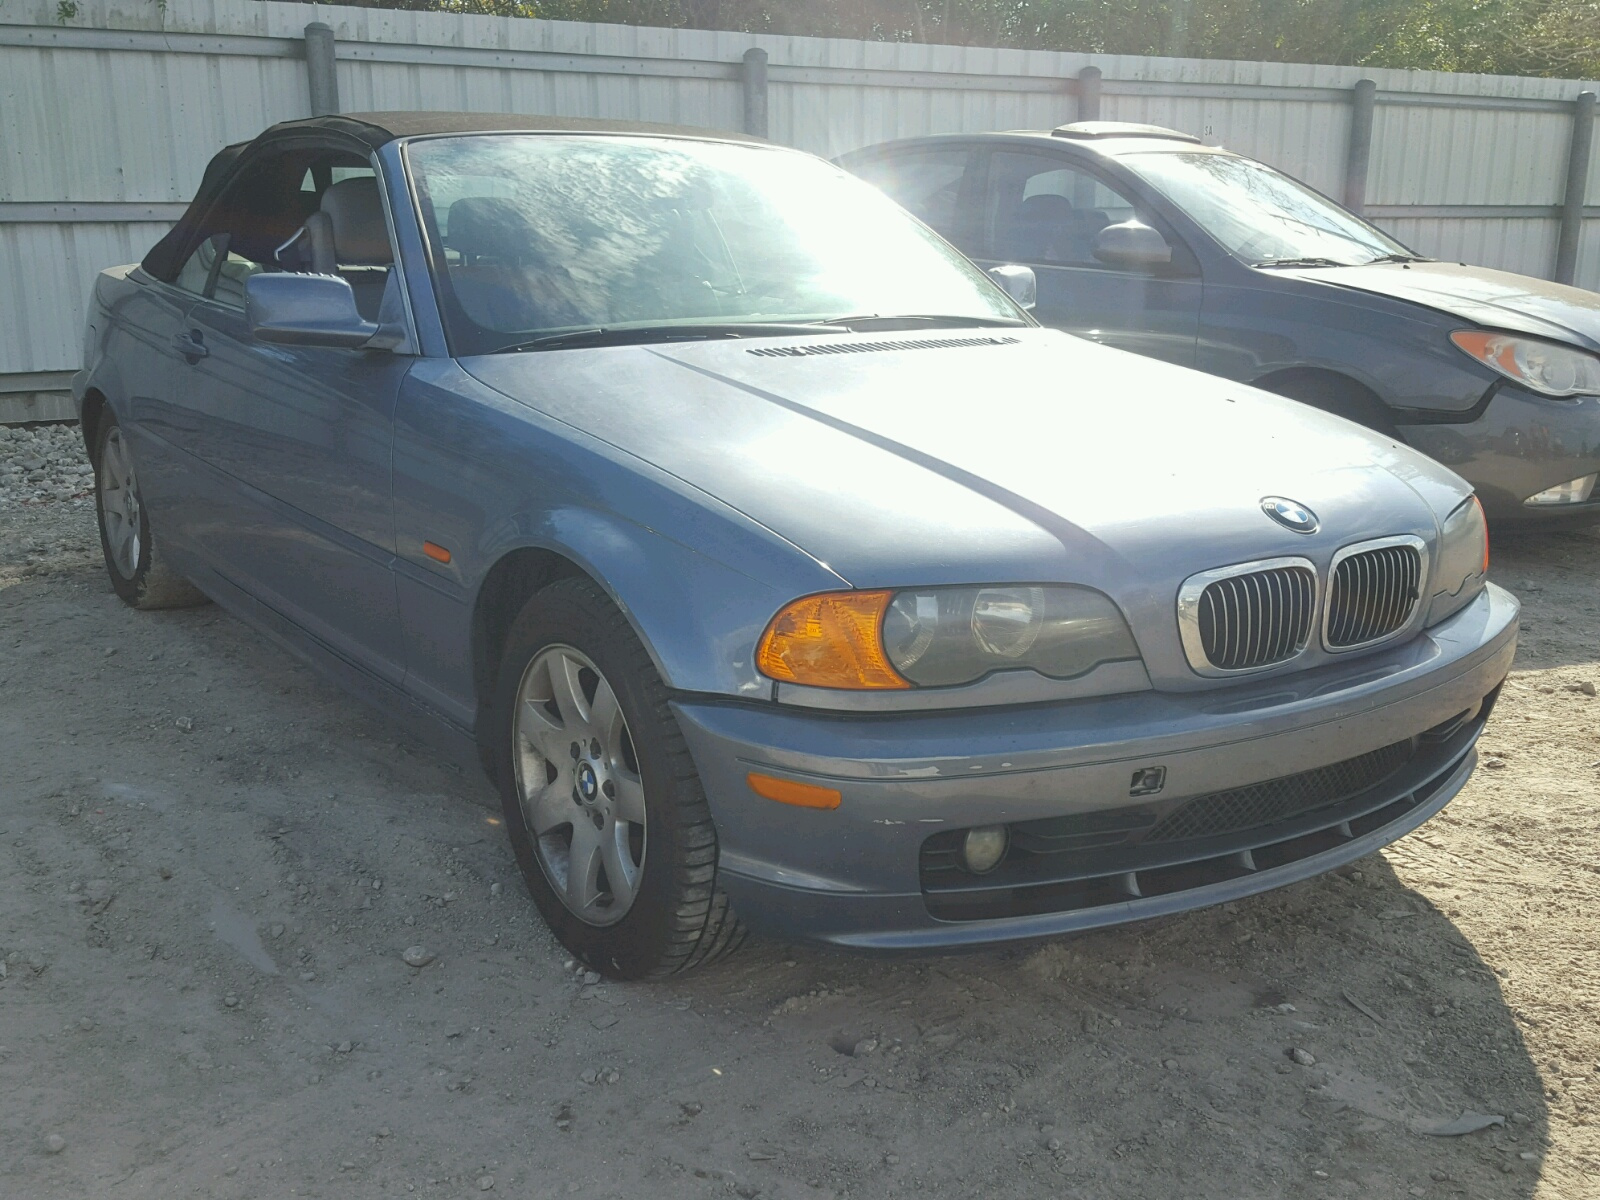 Auto Auction Ended On Vin Wbaam3346yca94663 2000 Bmw 323i In Va Danville